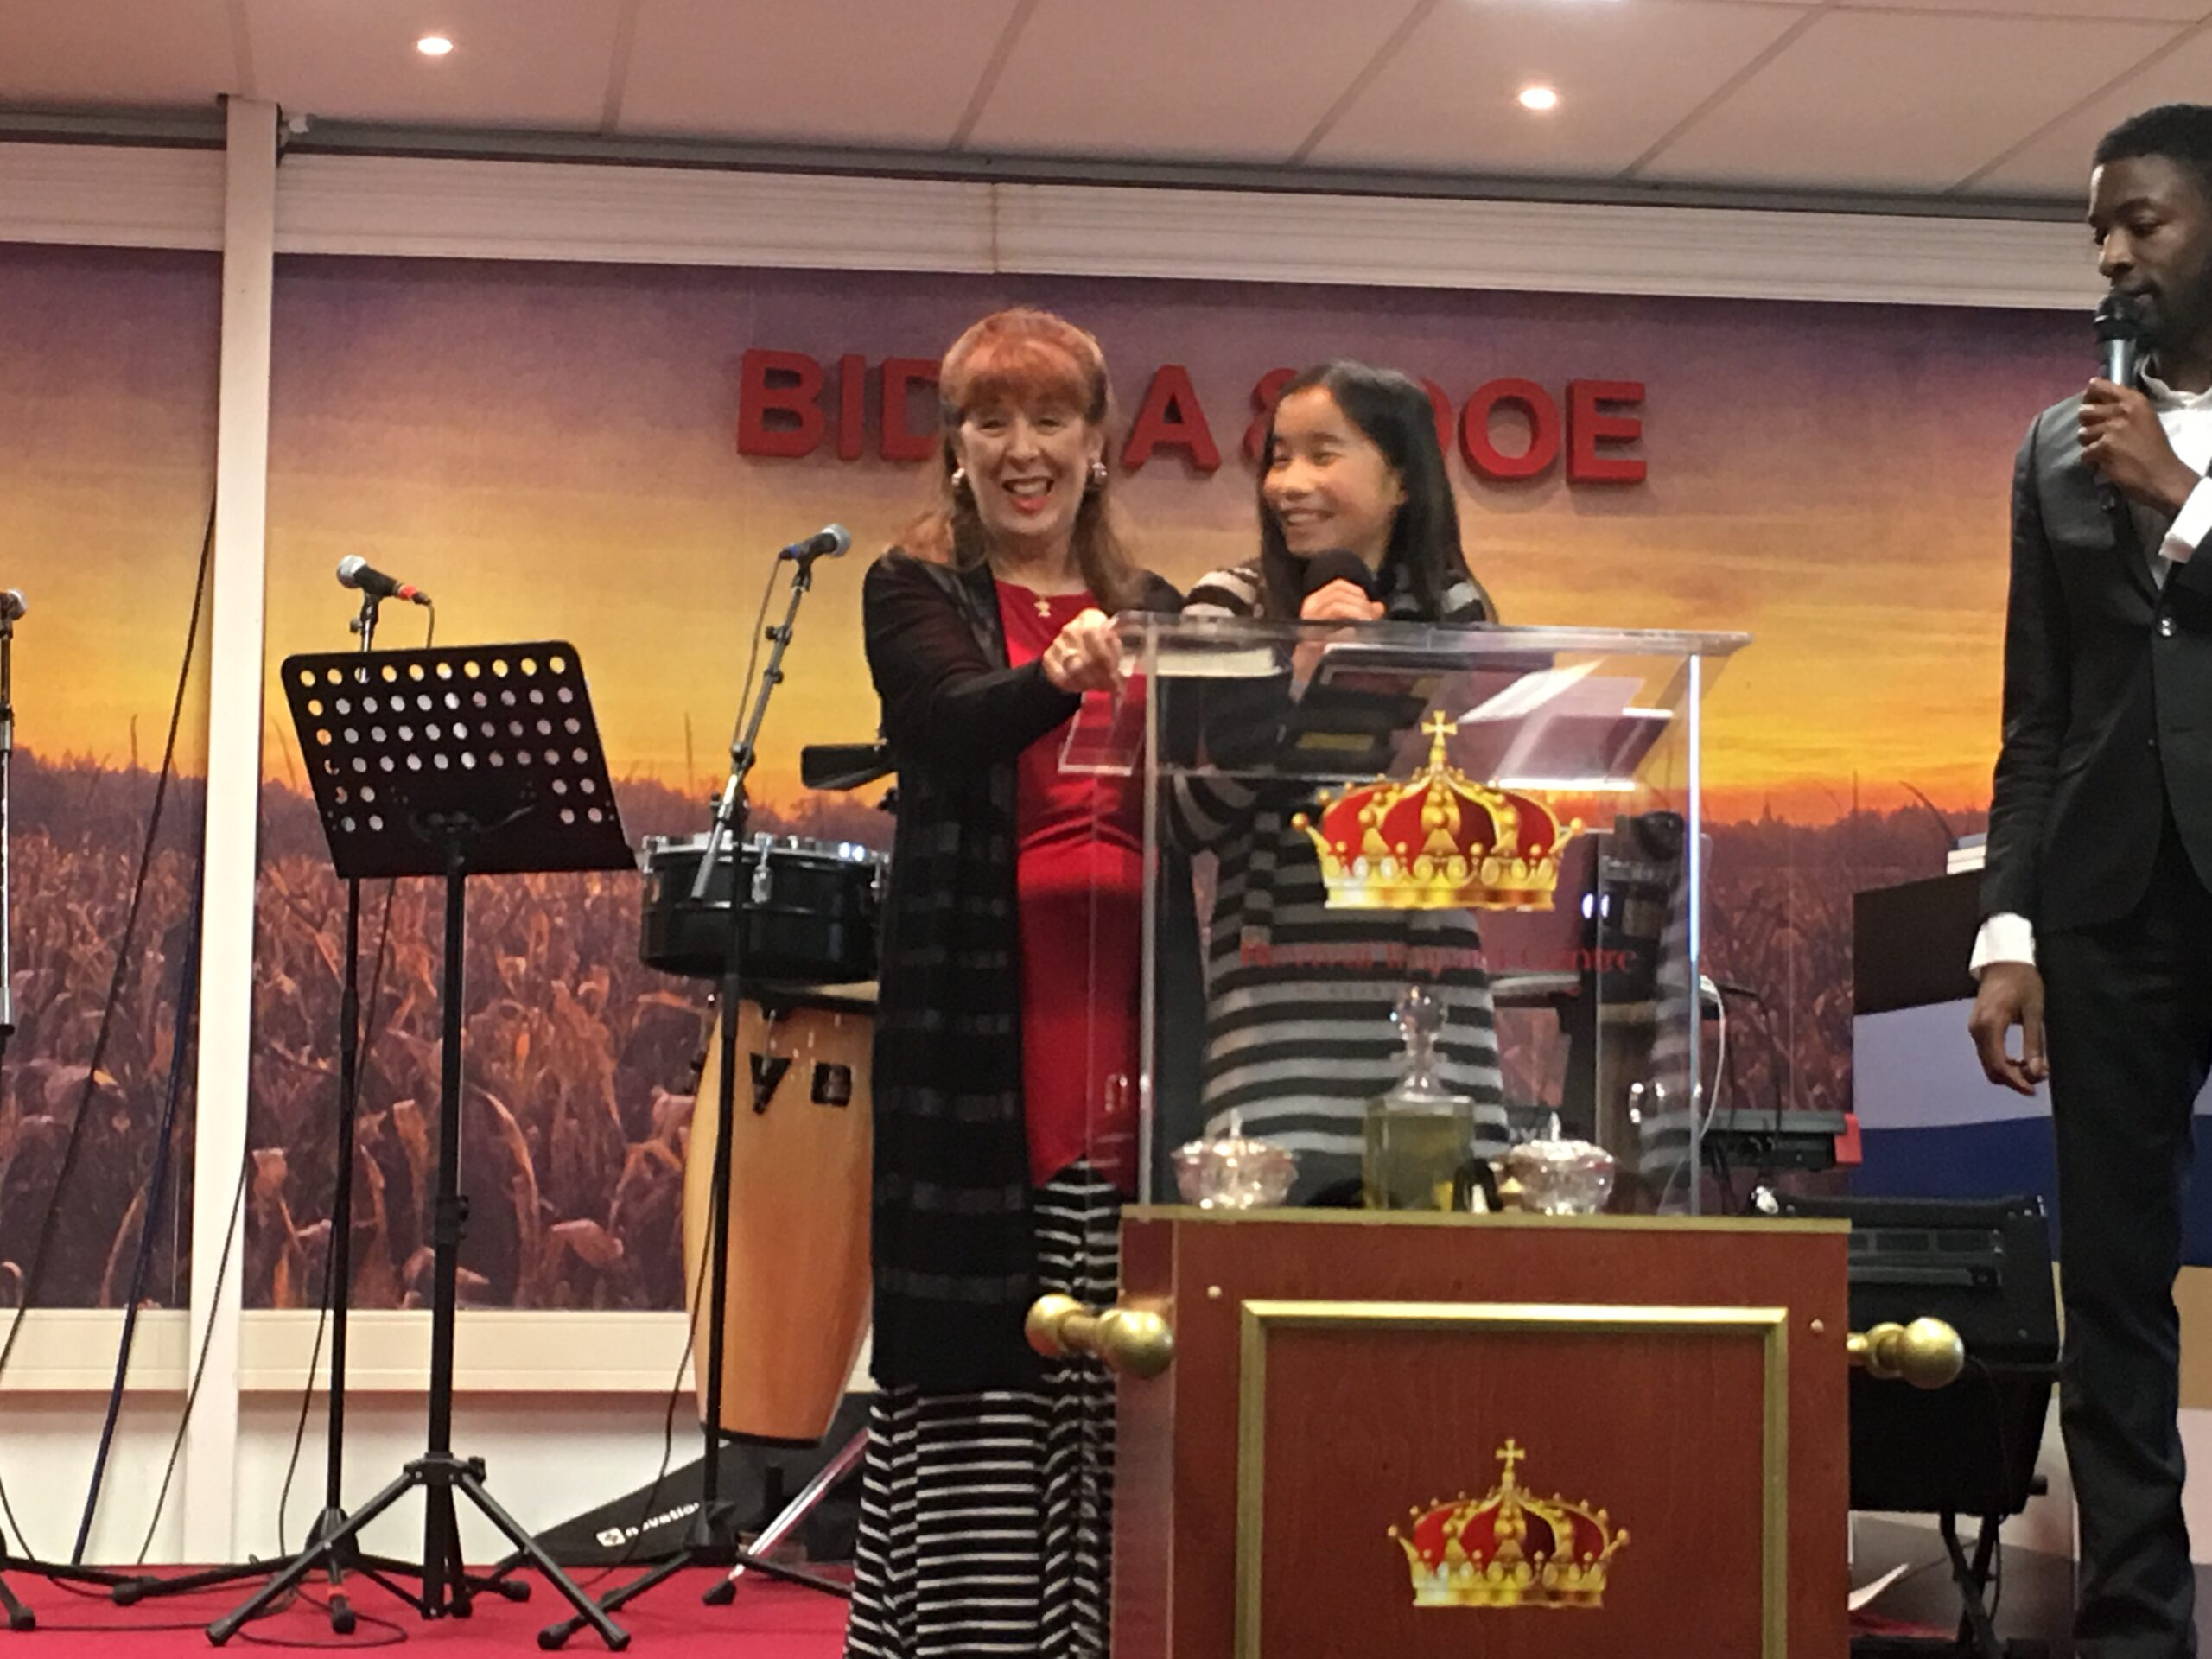 Susan and Autumn preaching in the Netherlands